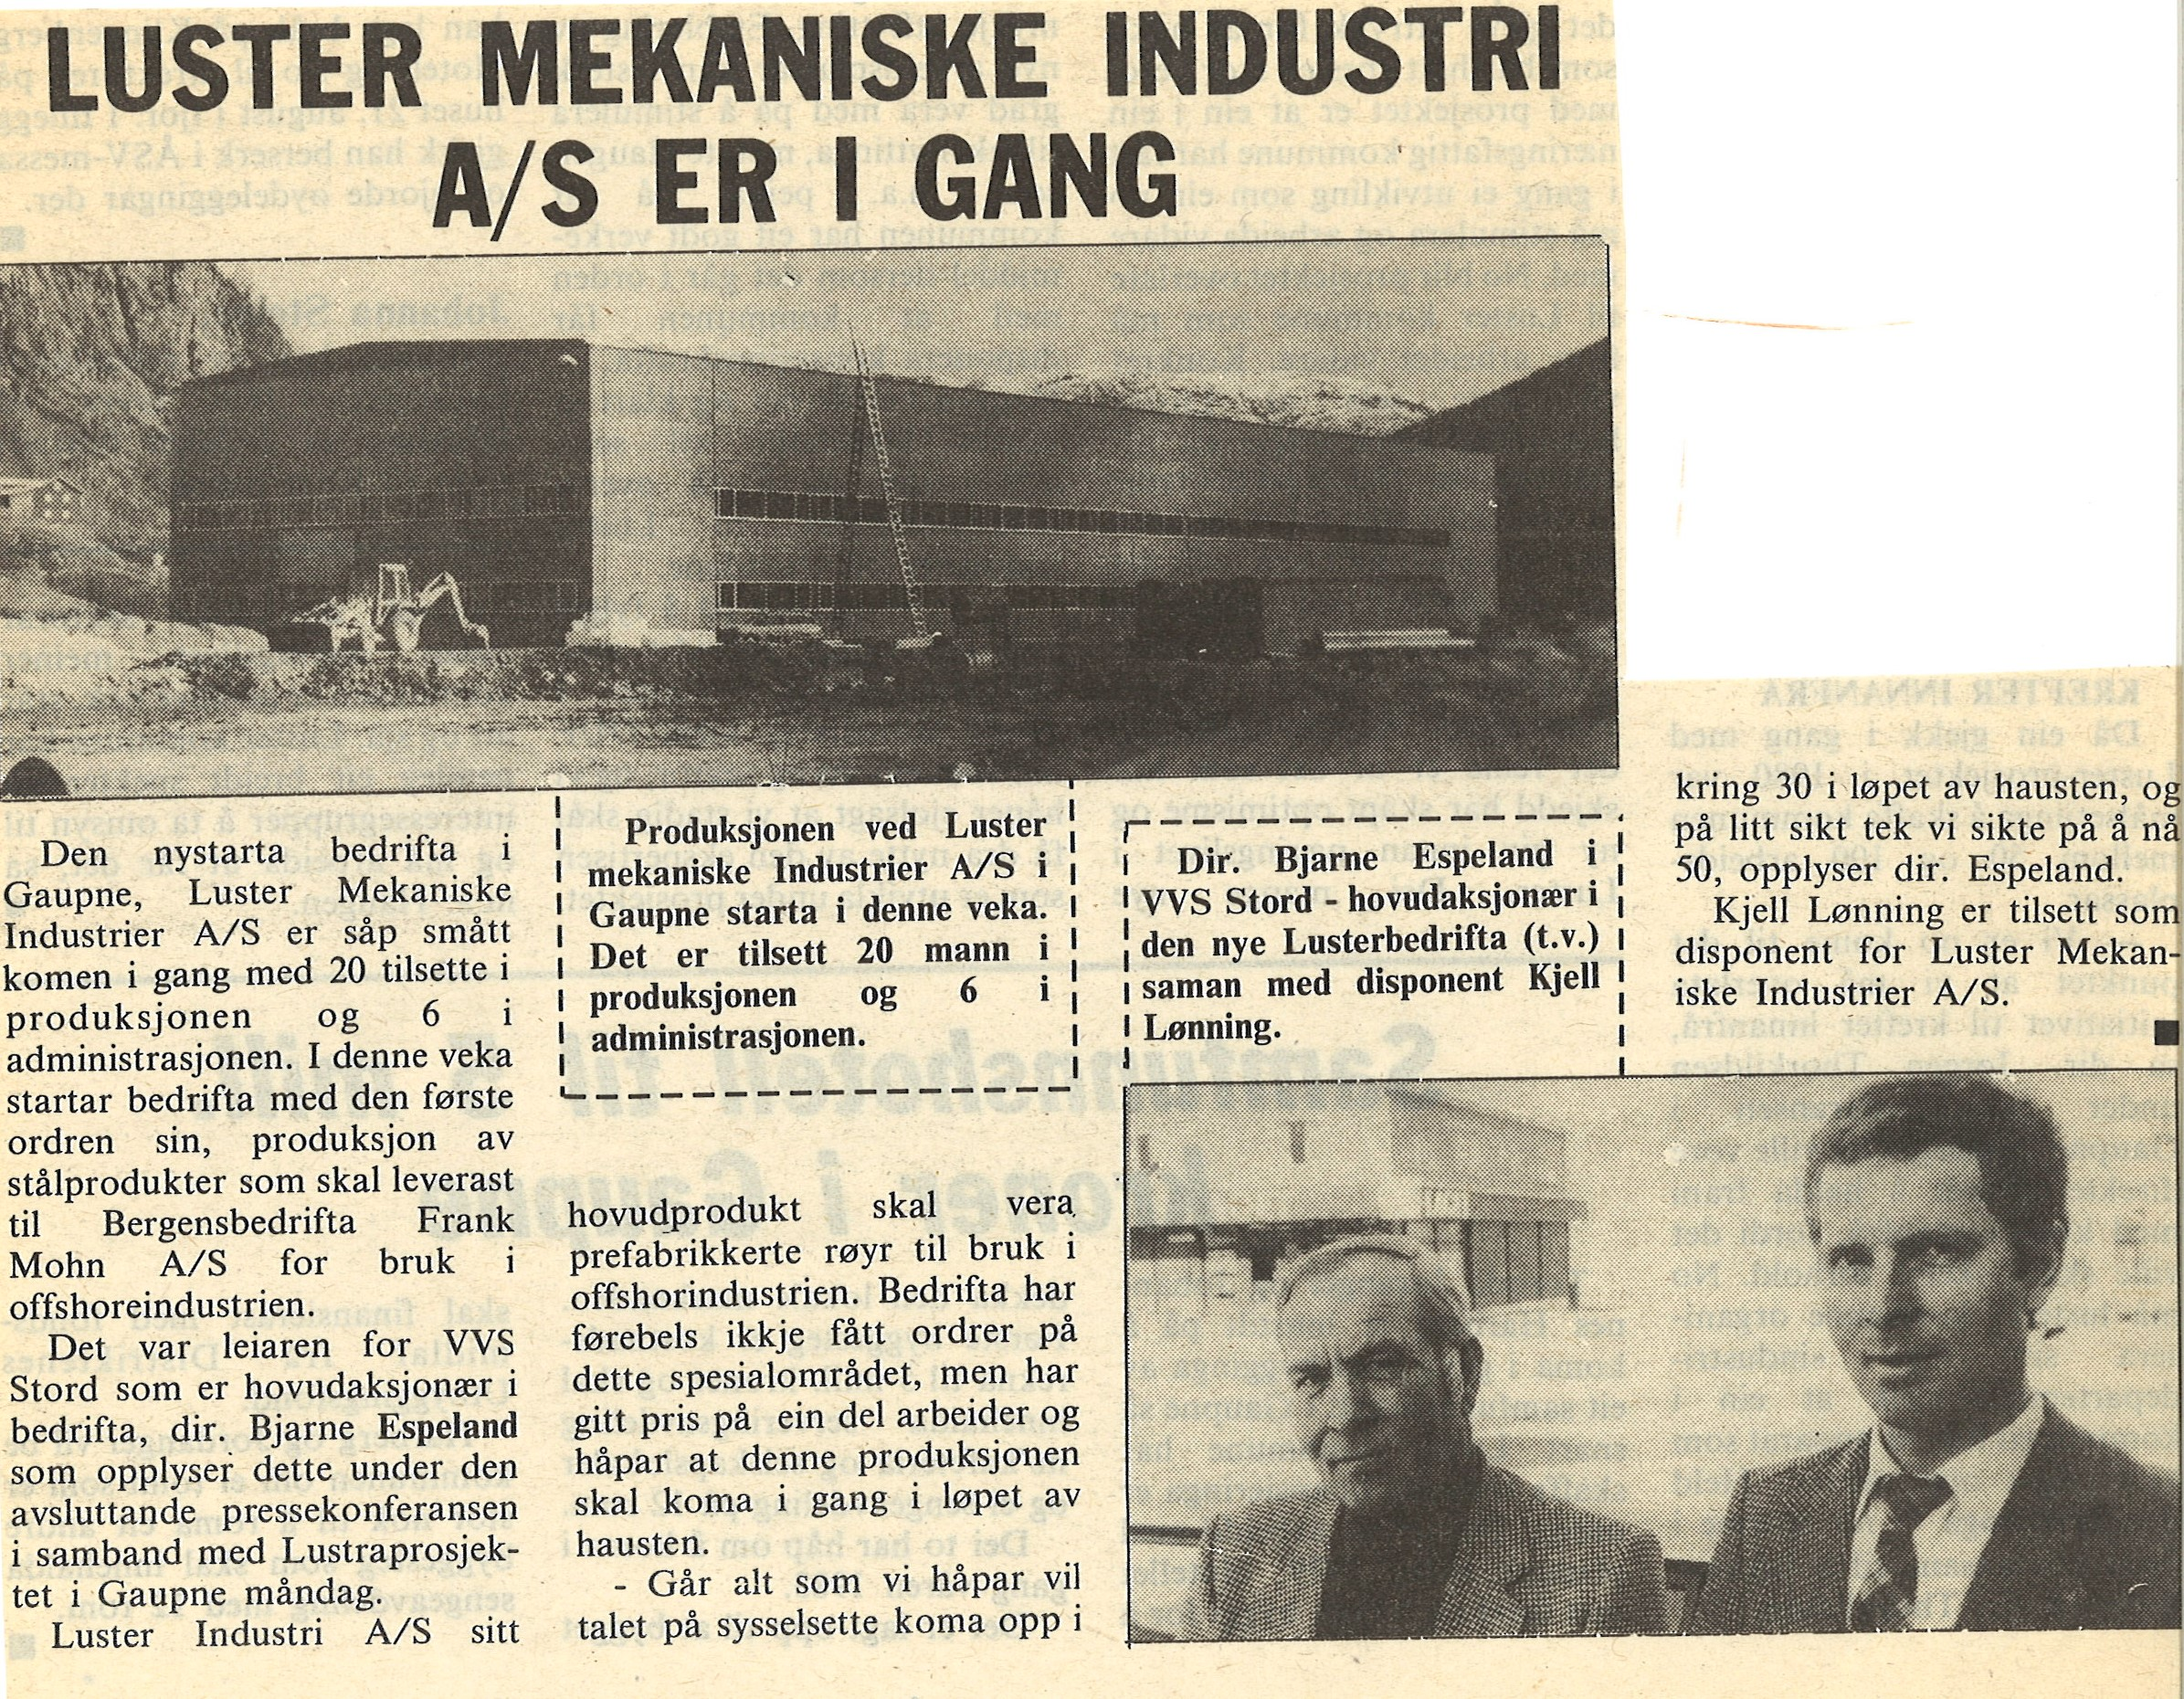 1981 - Luster Mekaniske Industri AS was established in 1981 by ÅSV and Stord VVS, and started with 12-15 employees. The main product was prefabrication of spools to use in the offshore industry.